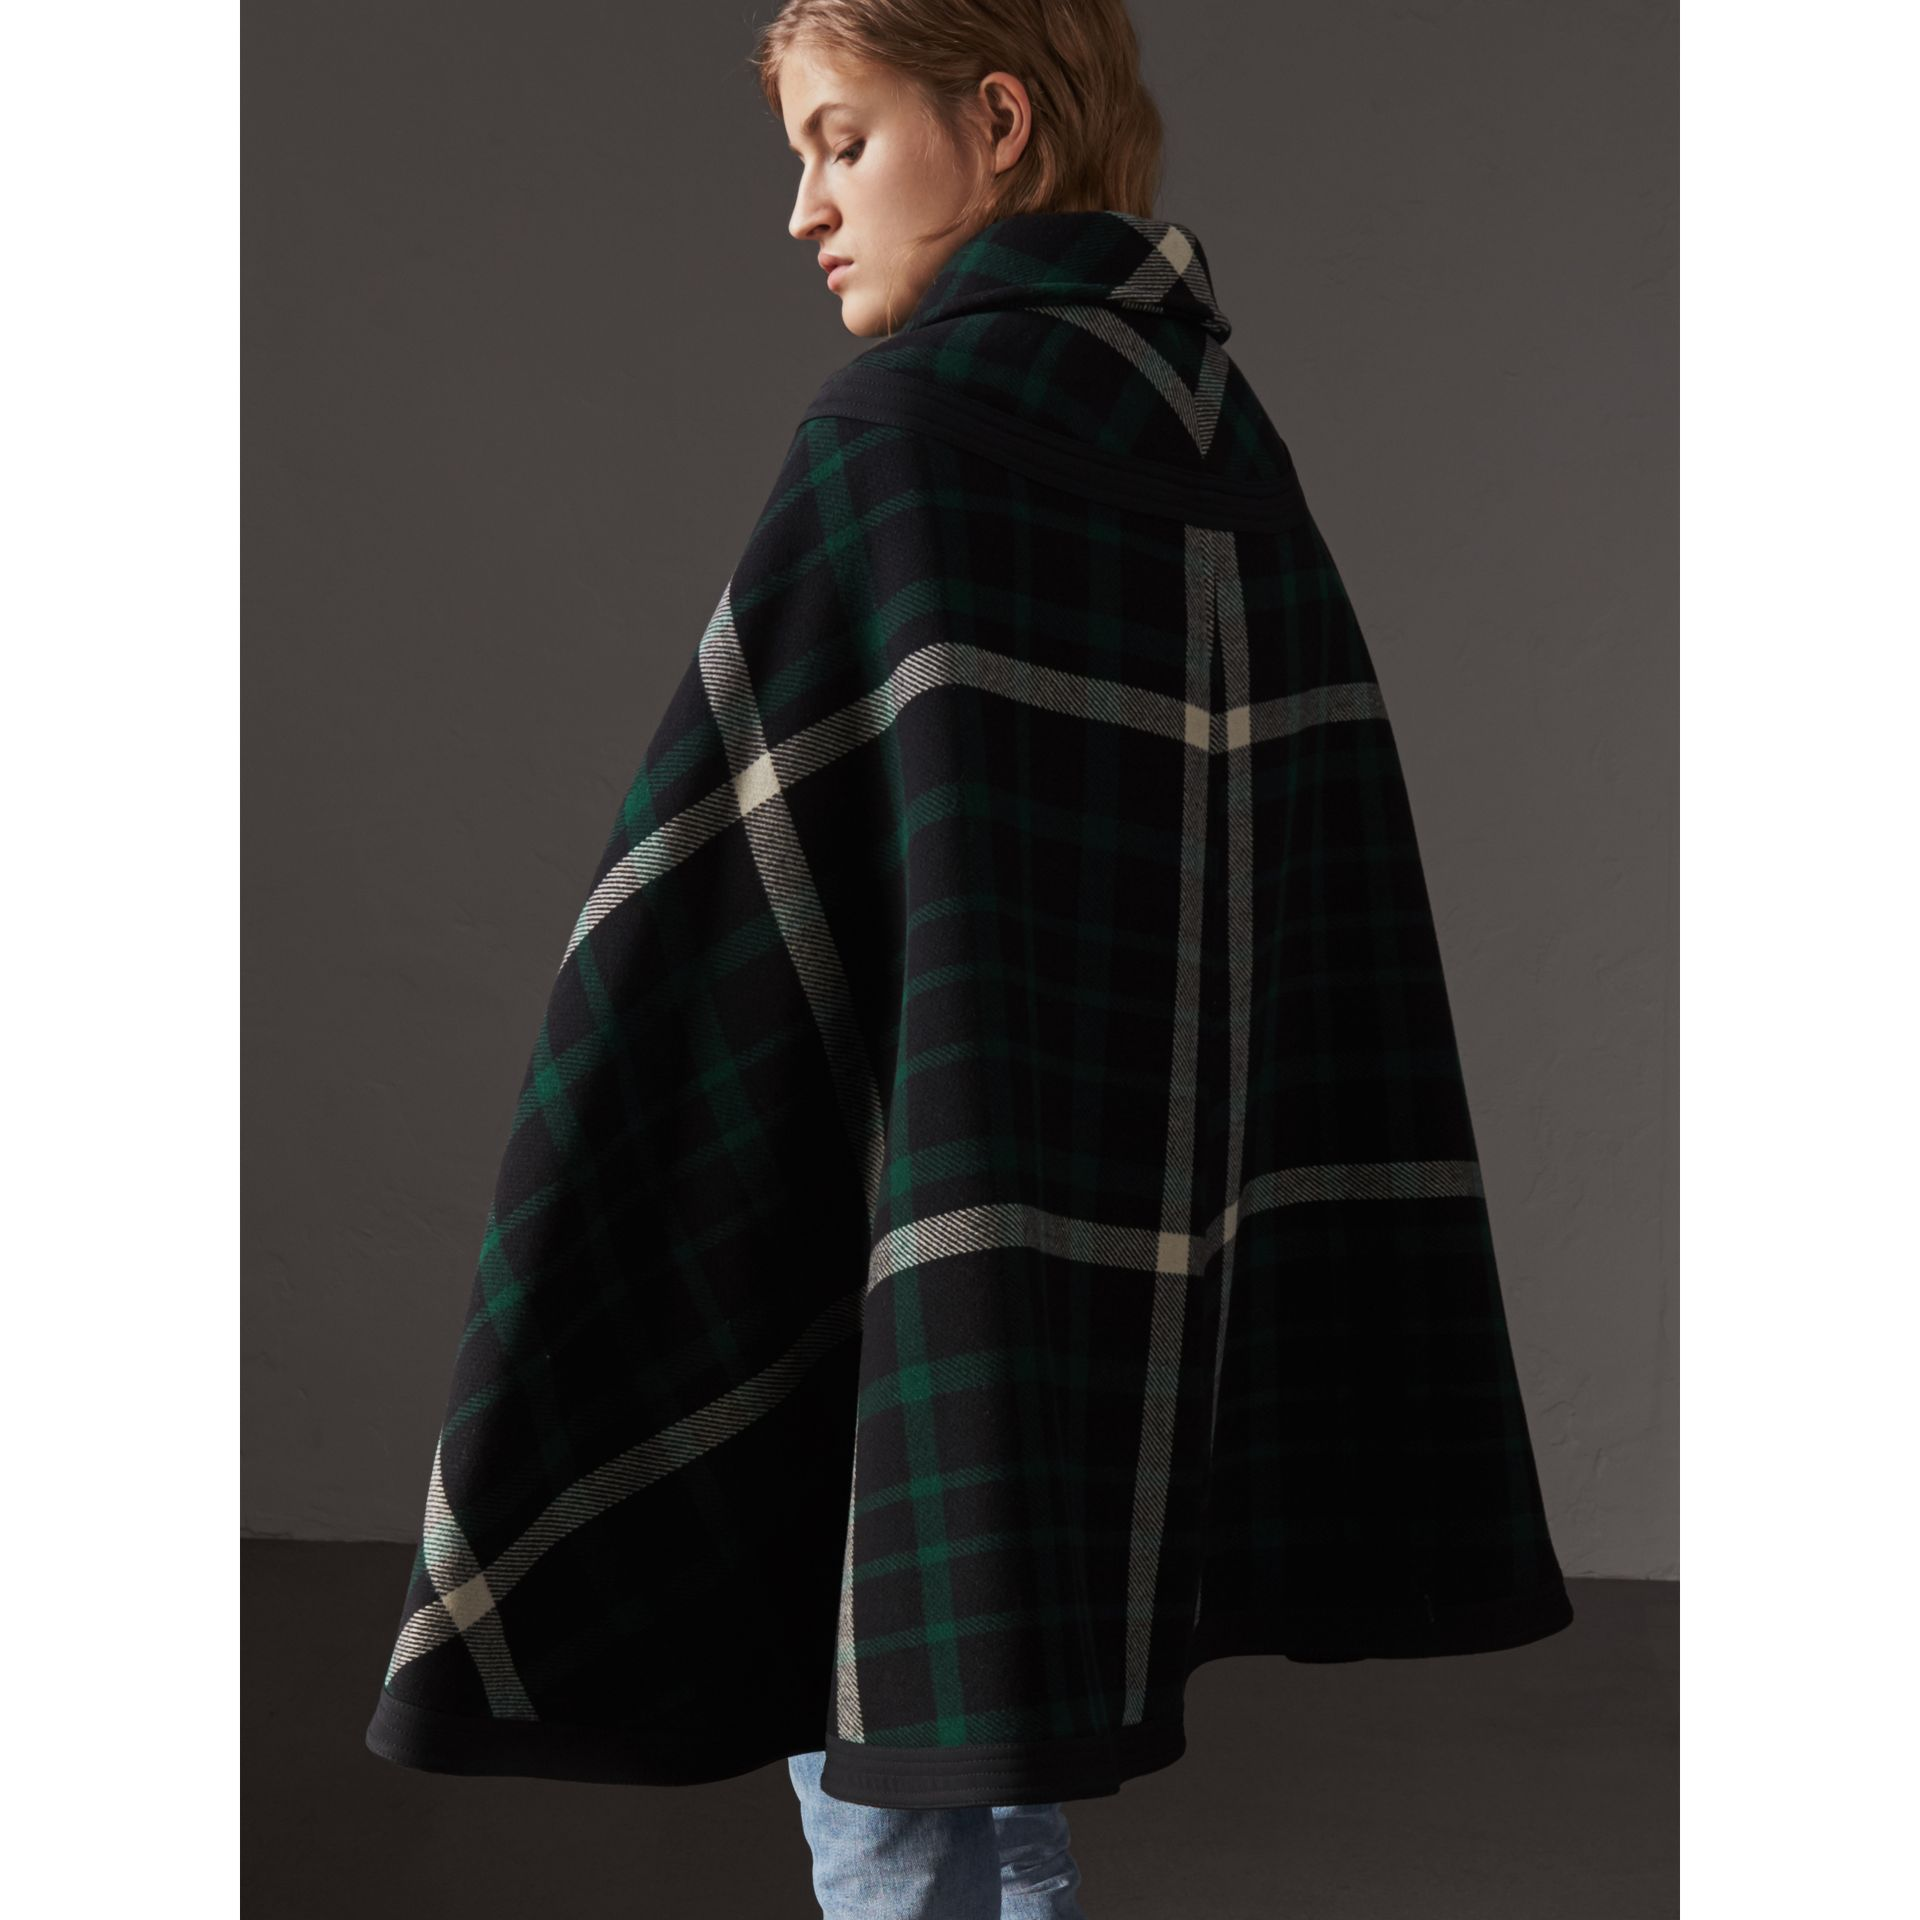 Exploded Tartan Wool Cape in Black/black - Women | Burberry - gallery image 3